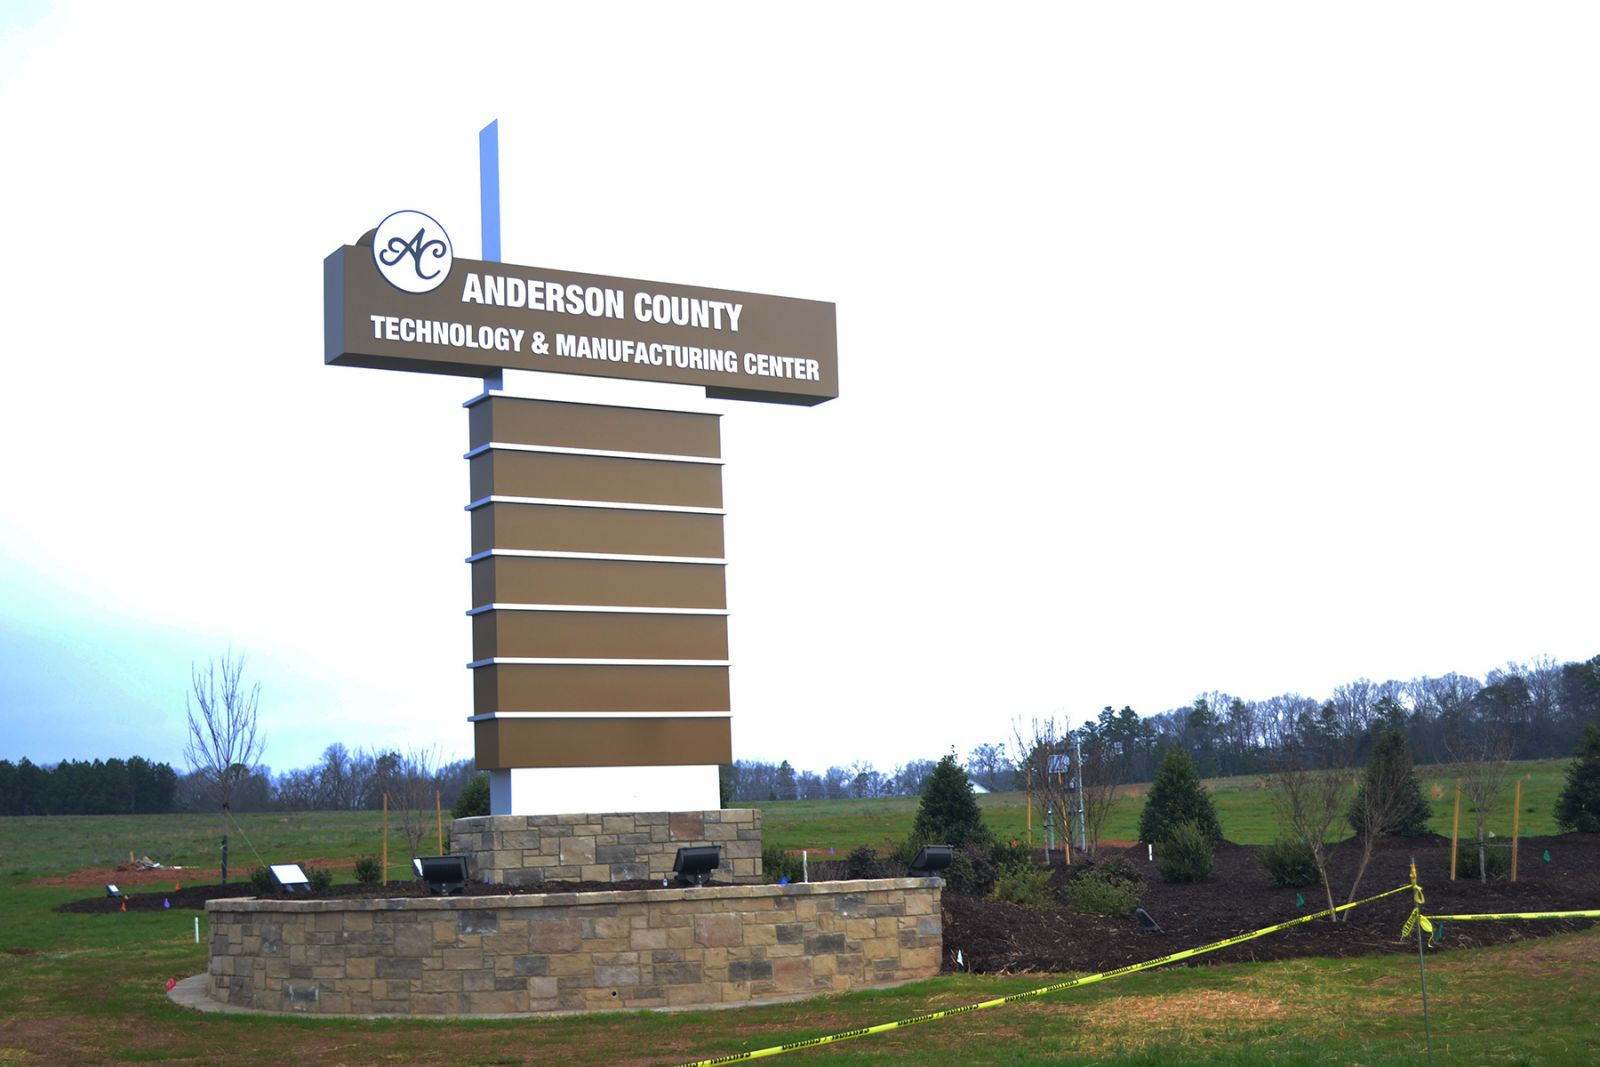 The new Anderson County Technology and Manufacturing Center is in Sandy Springs along Highway 76. (Photo/Teresa Cutlip)